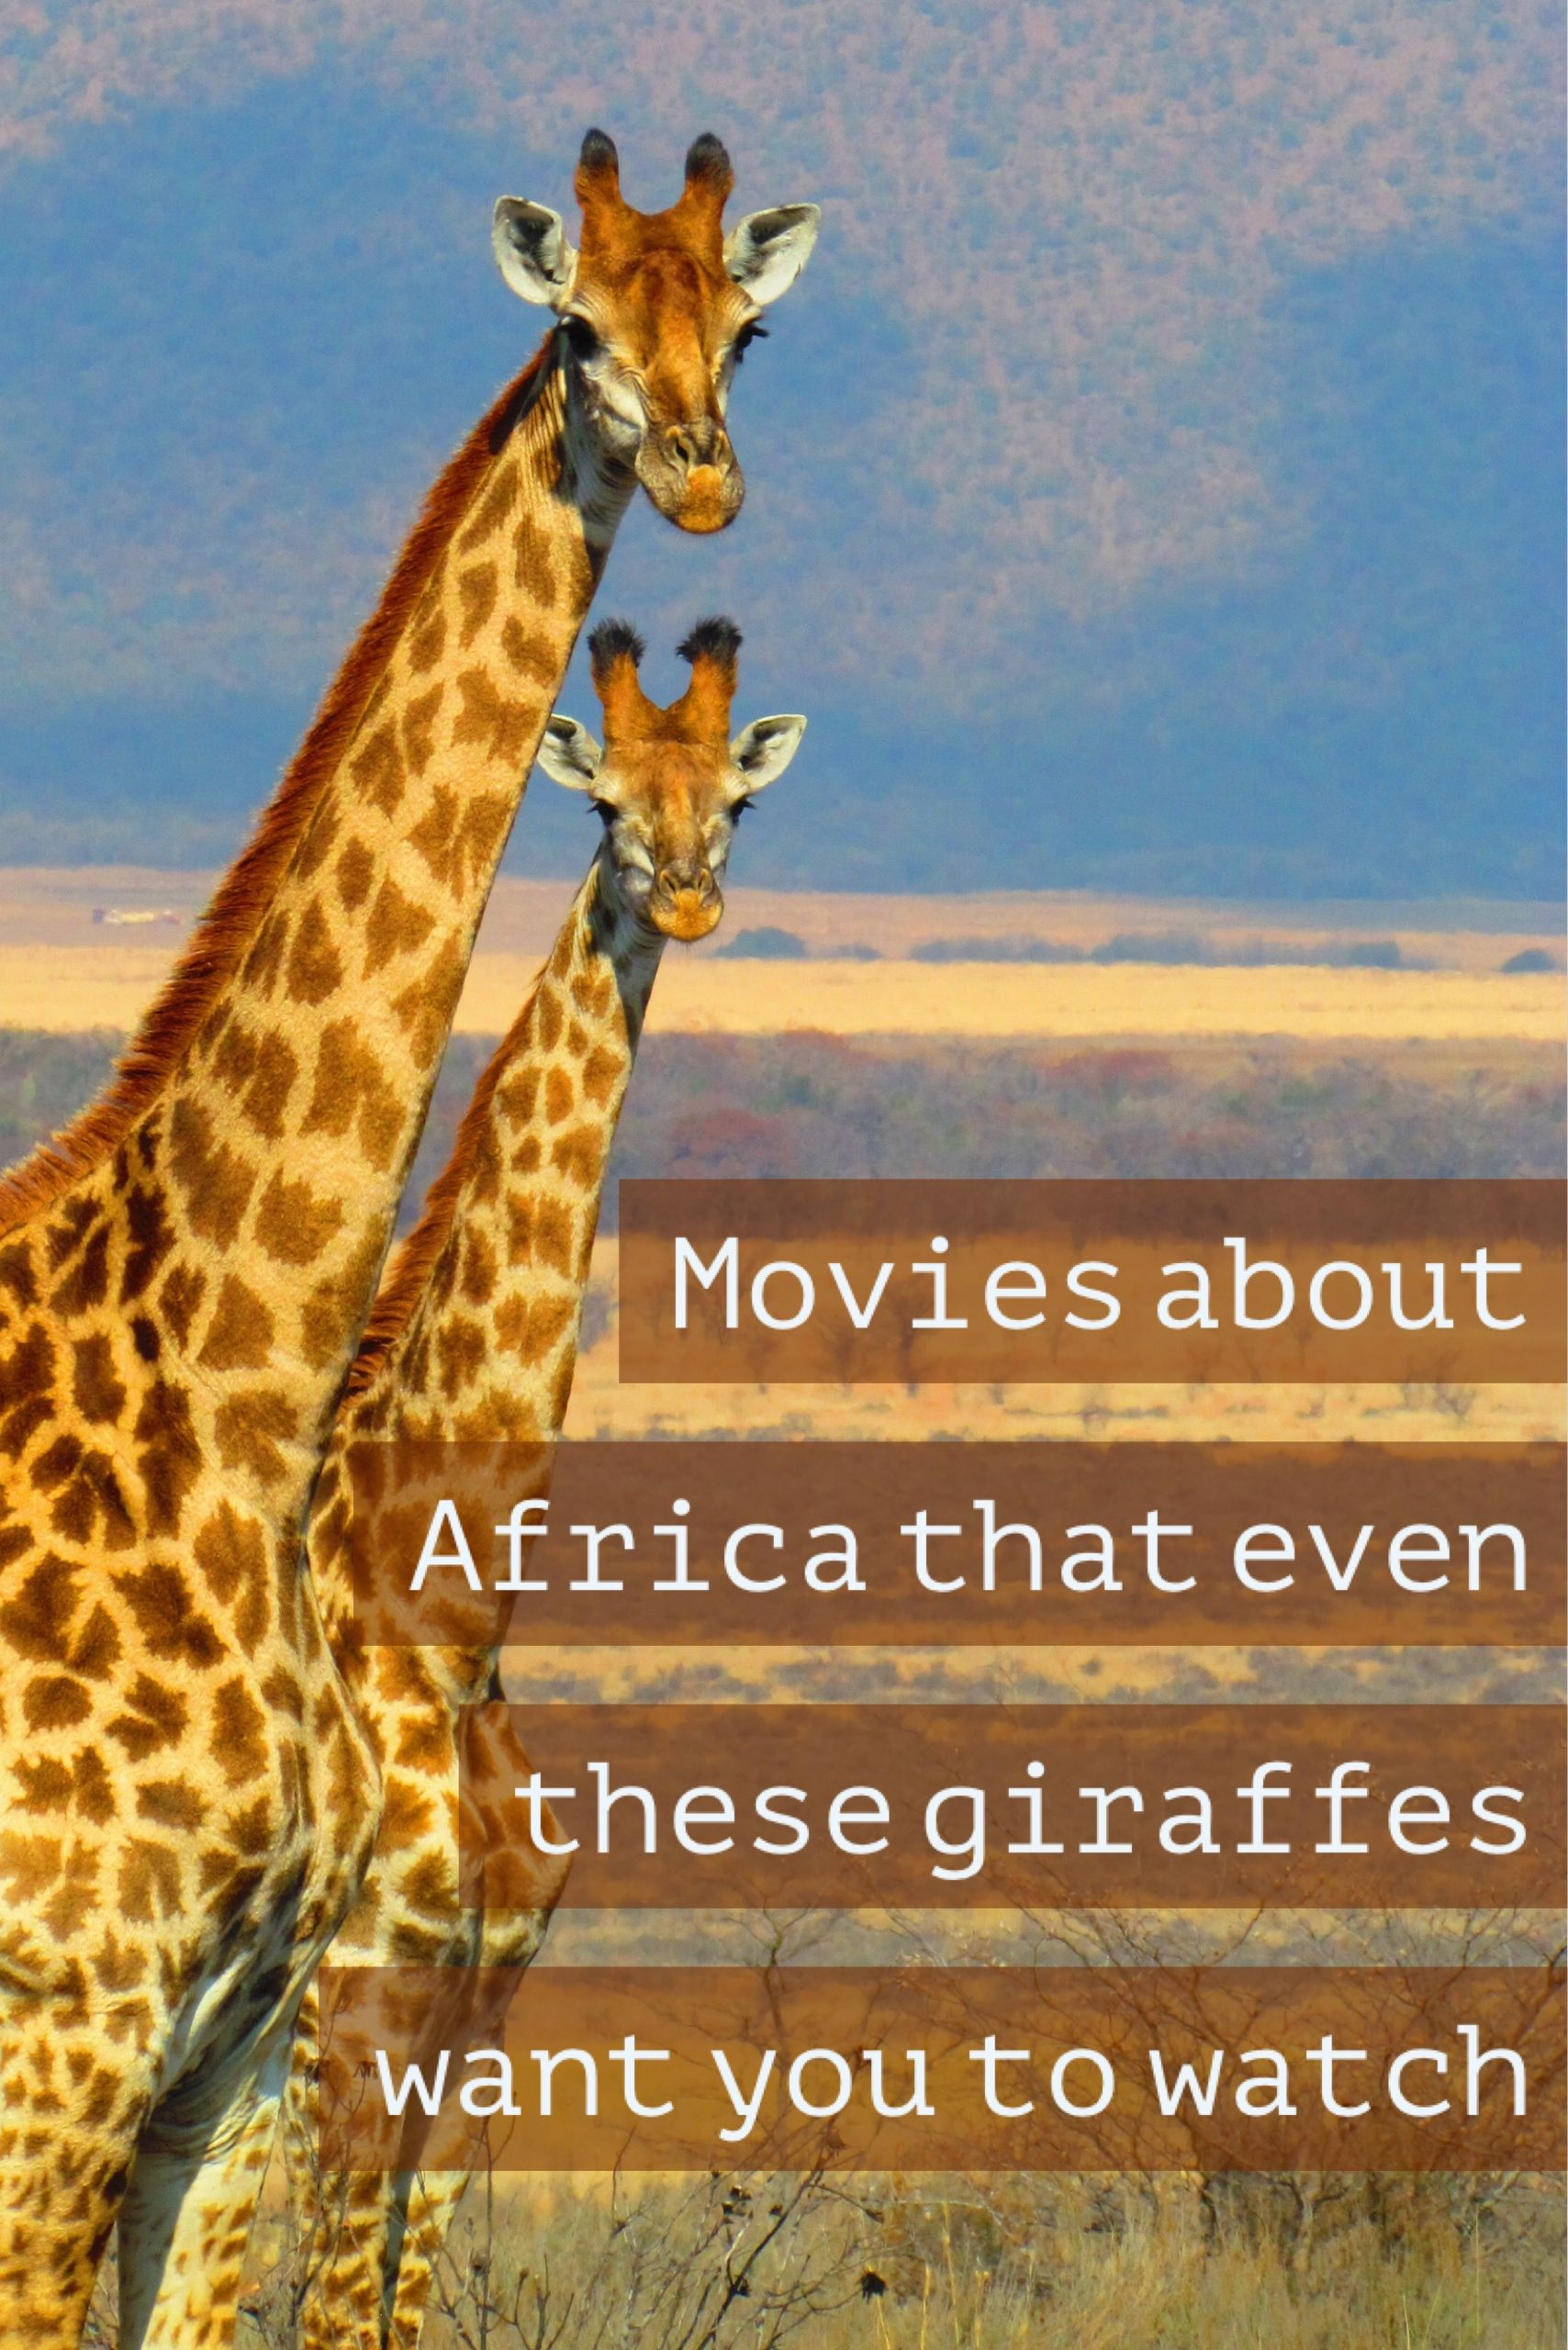 20 Movies About Africa to Watch Before Visiting the